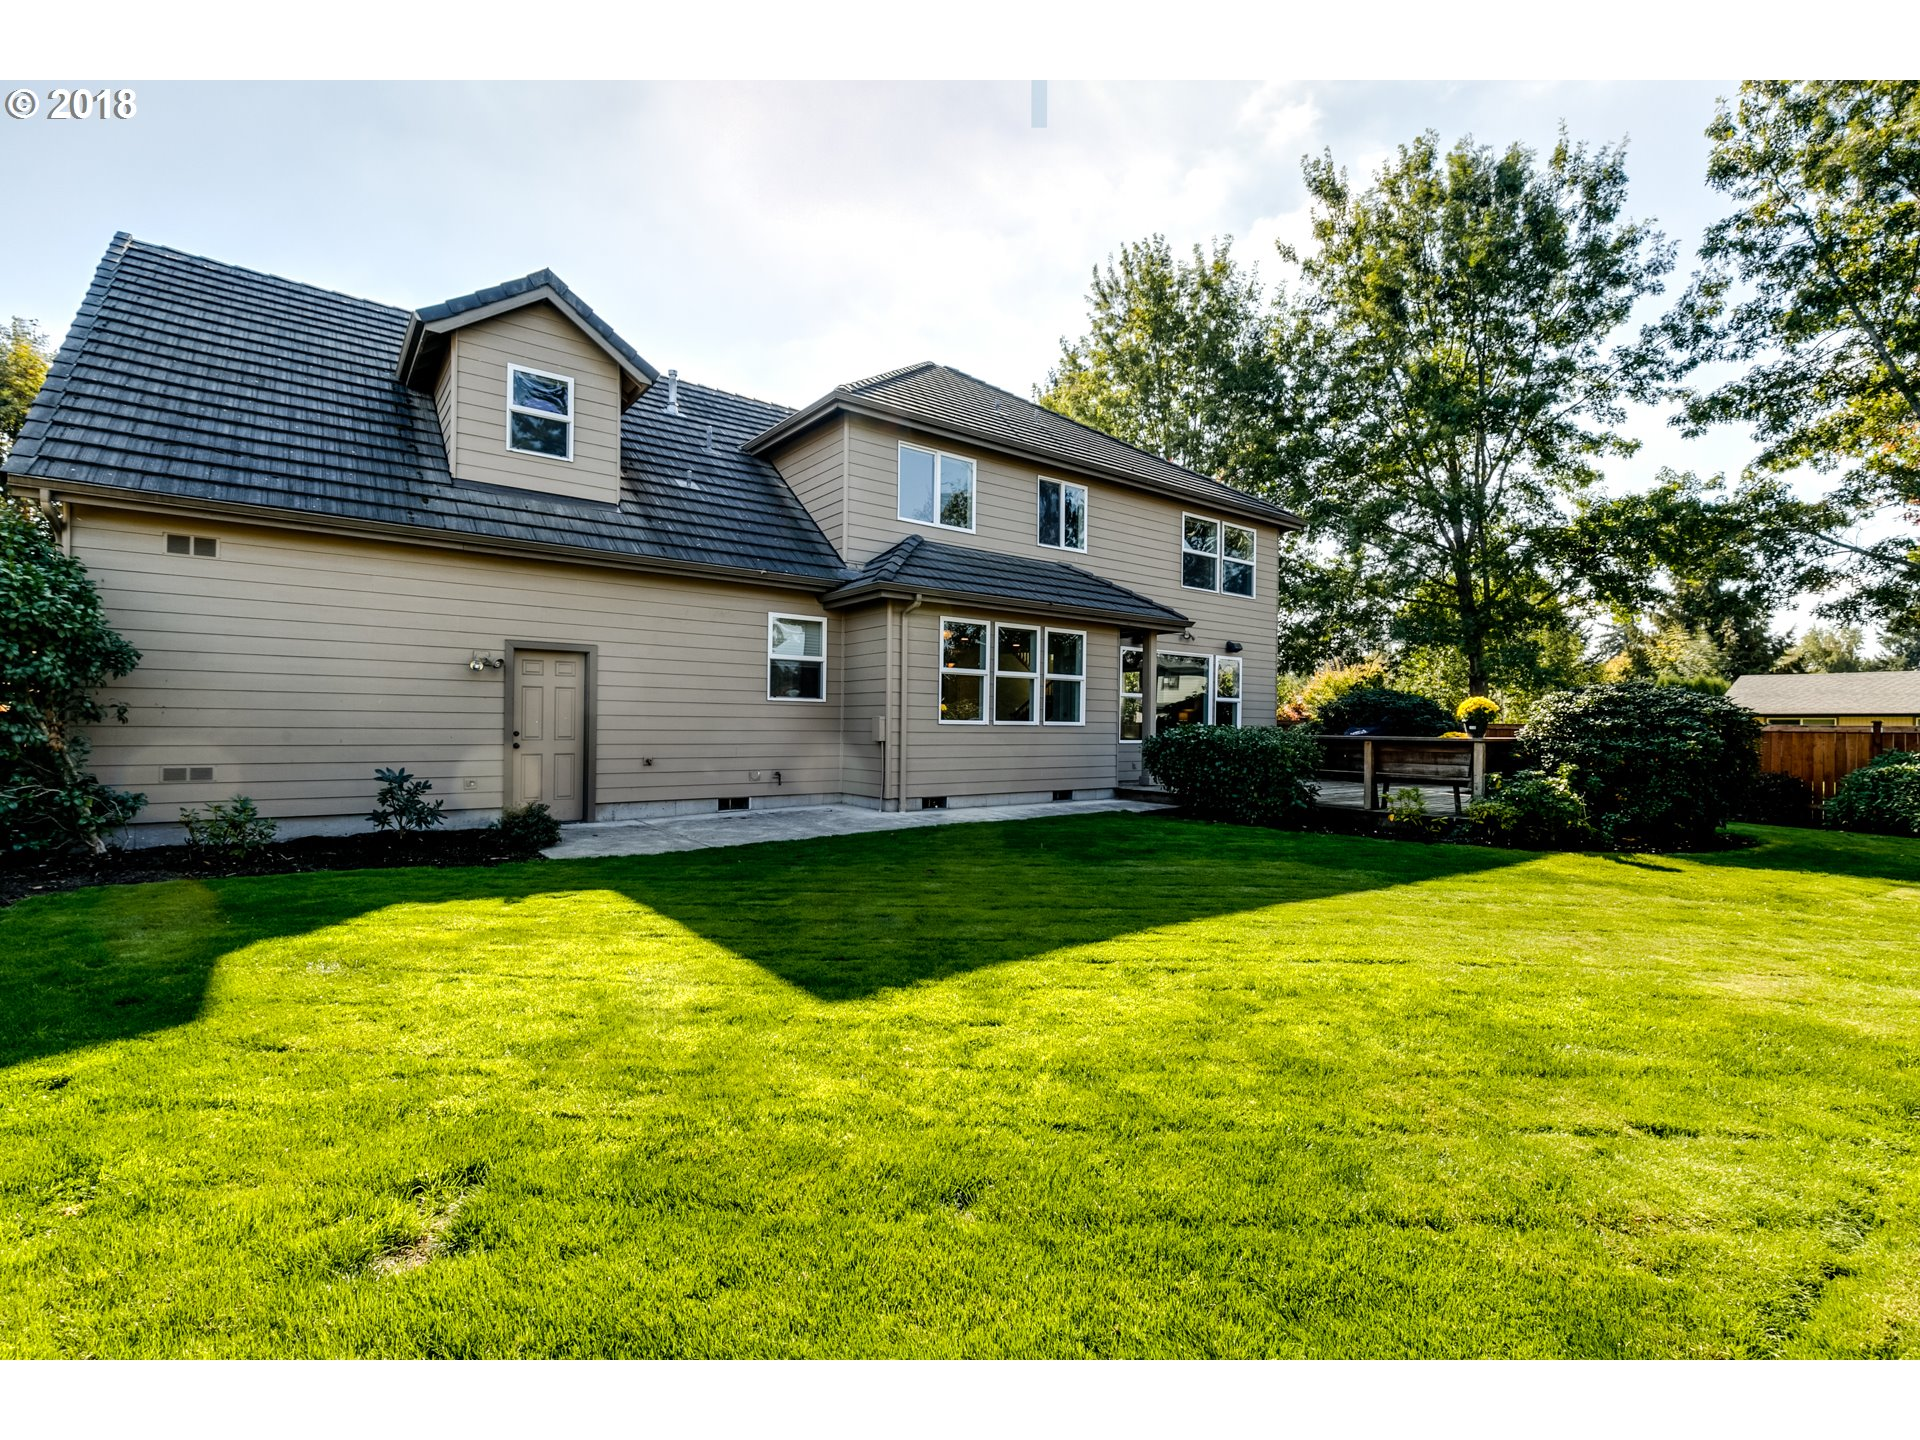 3795 MARCELLA AVE Eugene, OR 97408 - MLS #: 18689877